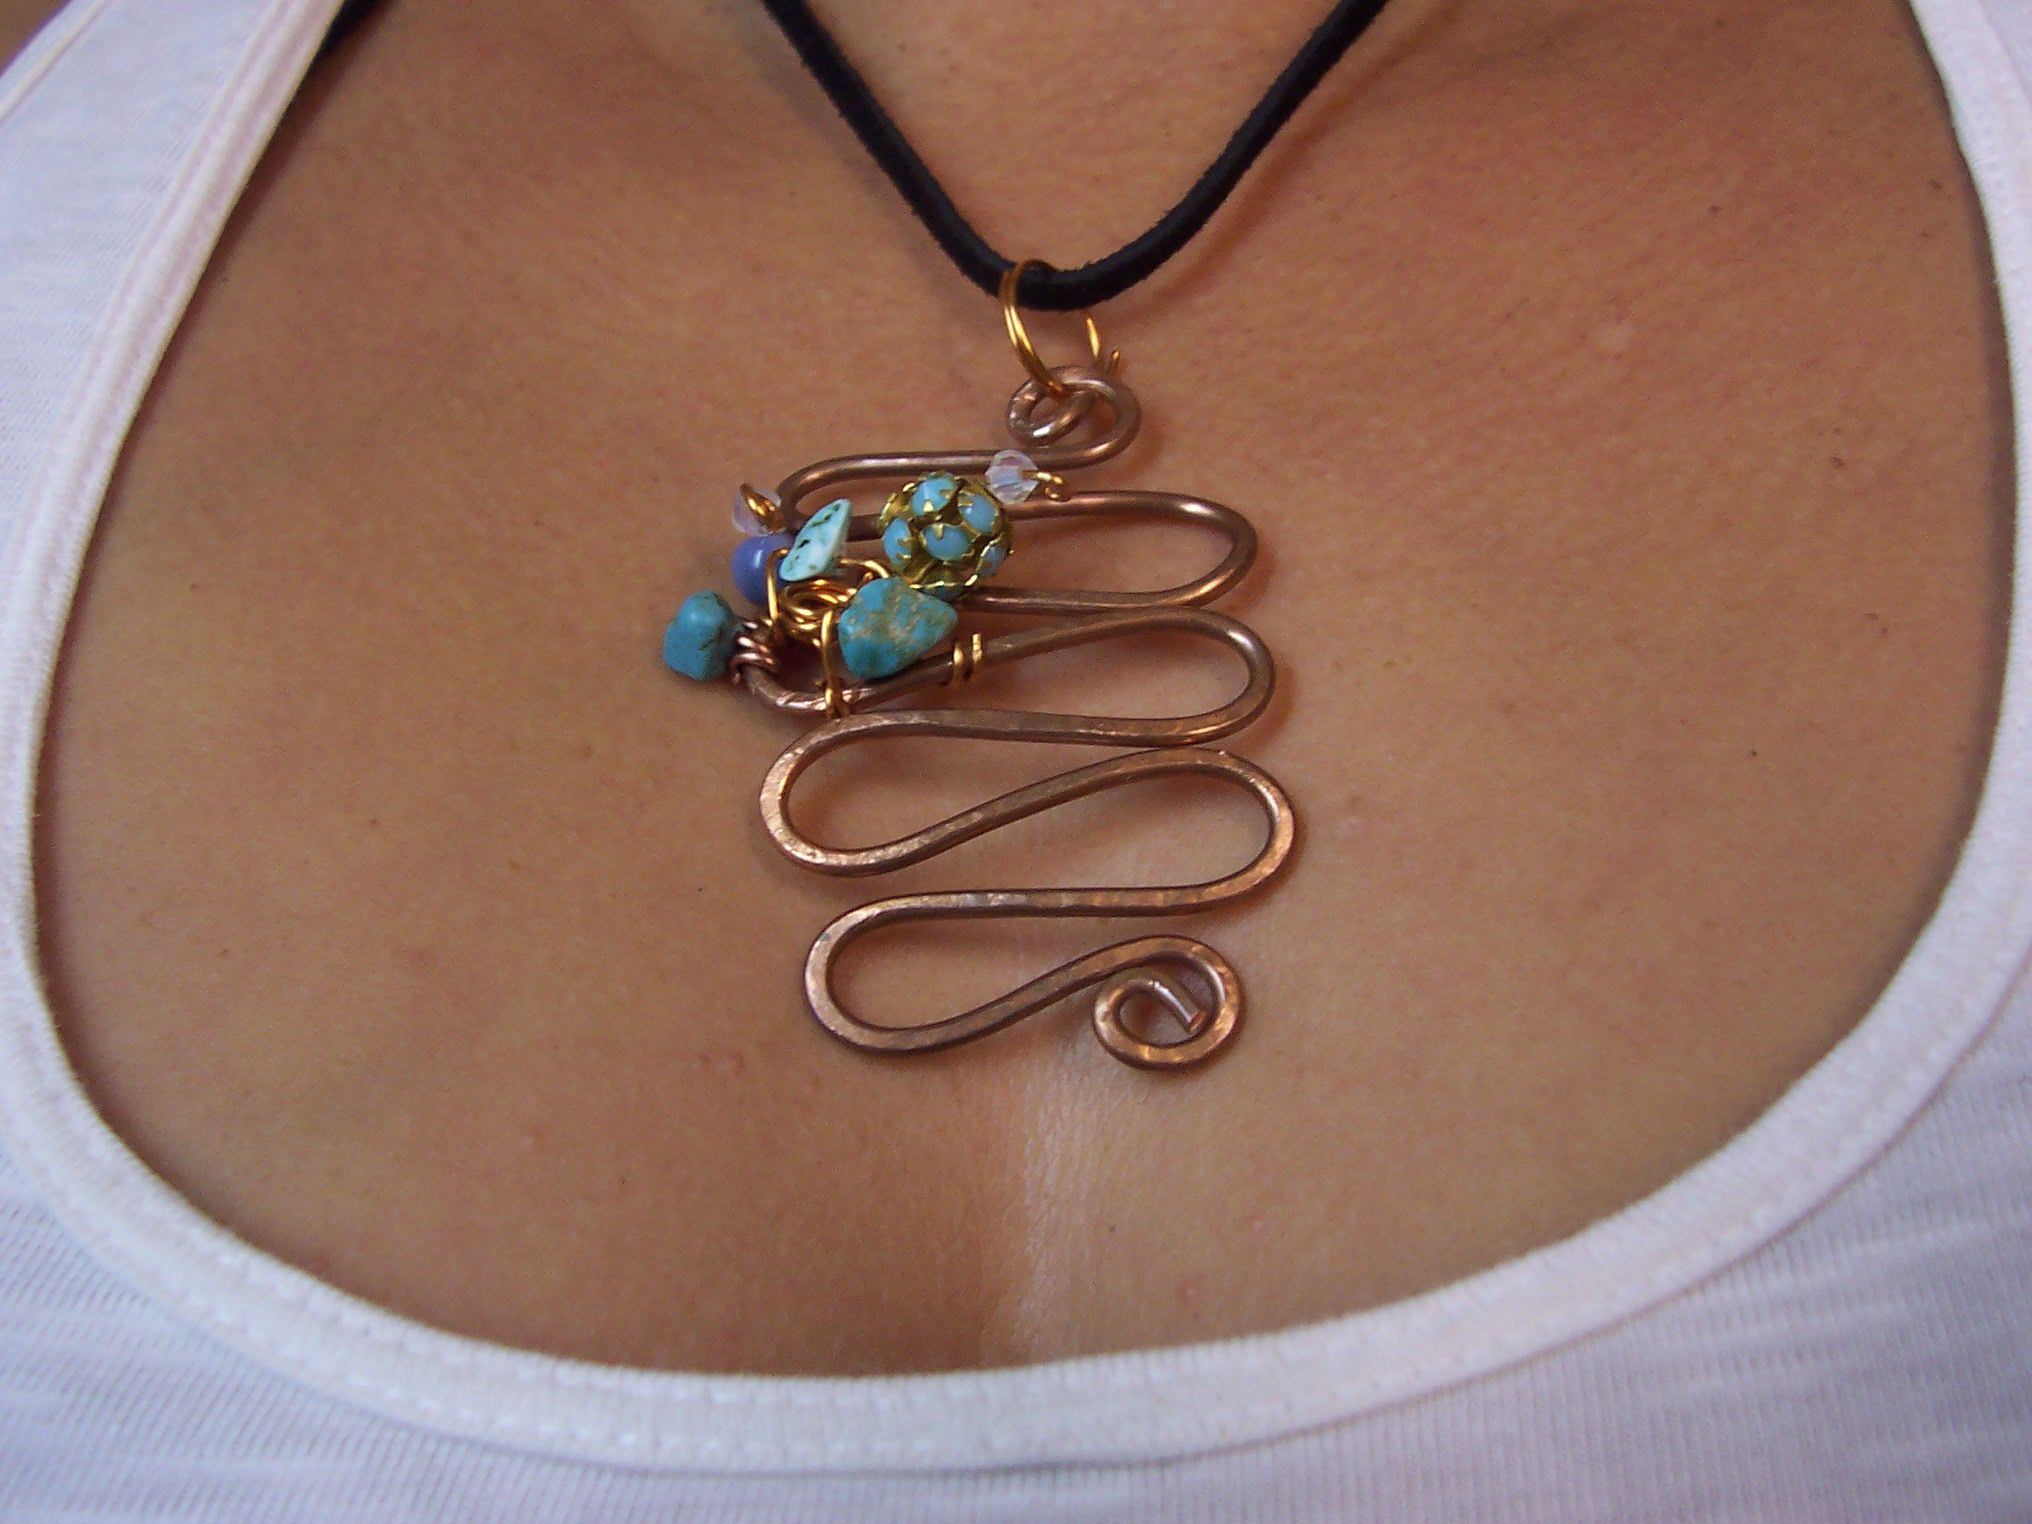 Real copper and gemstones, handmade pendant comes on deer leather ...